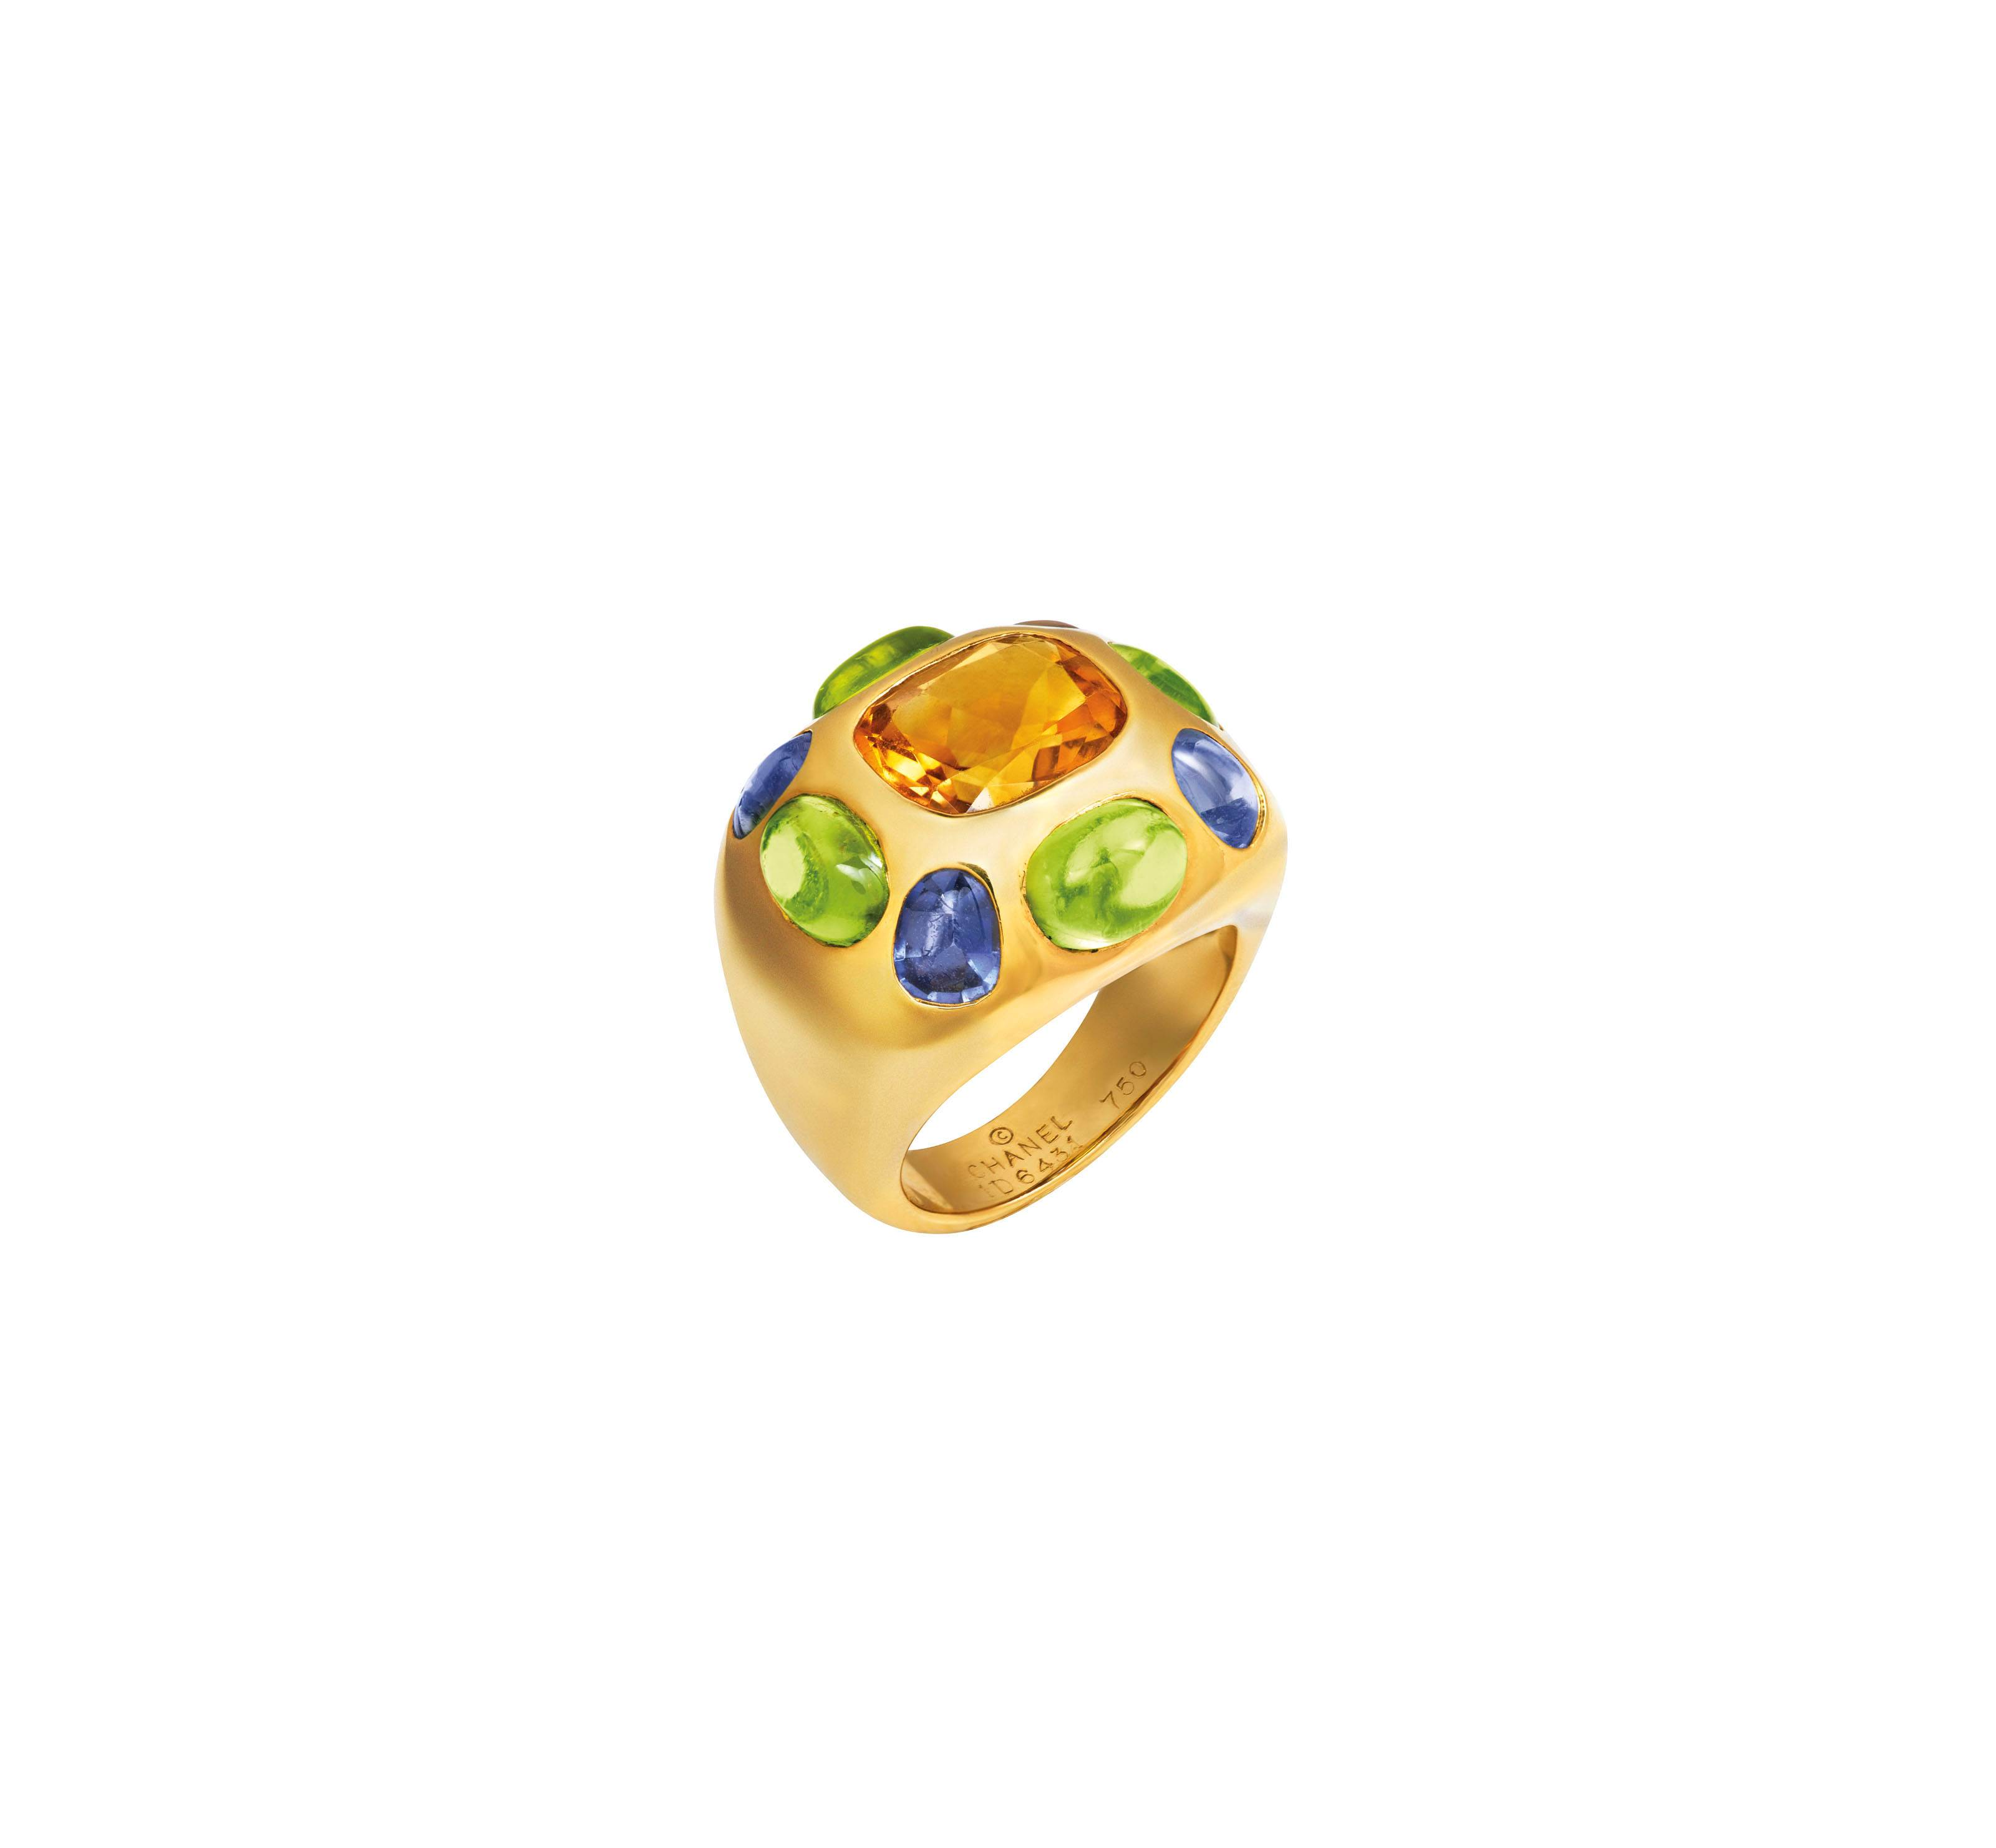 CITRINE, PERIDOT AND SAPPHIRE RING, CHANEL